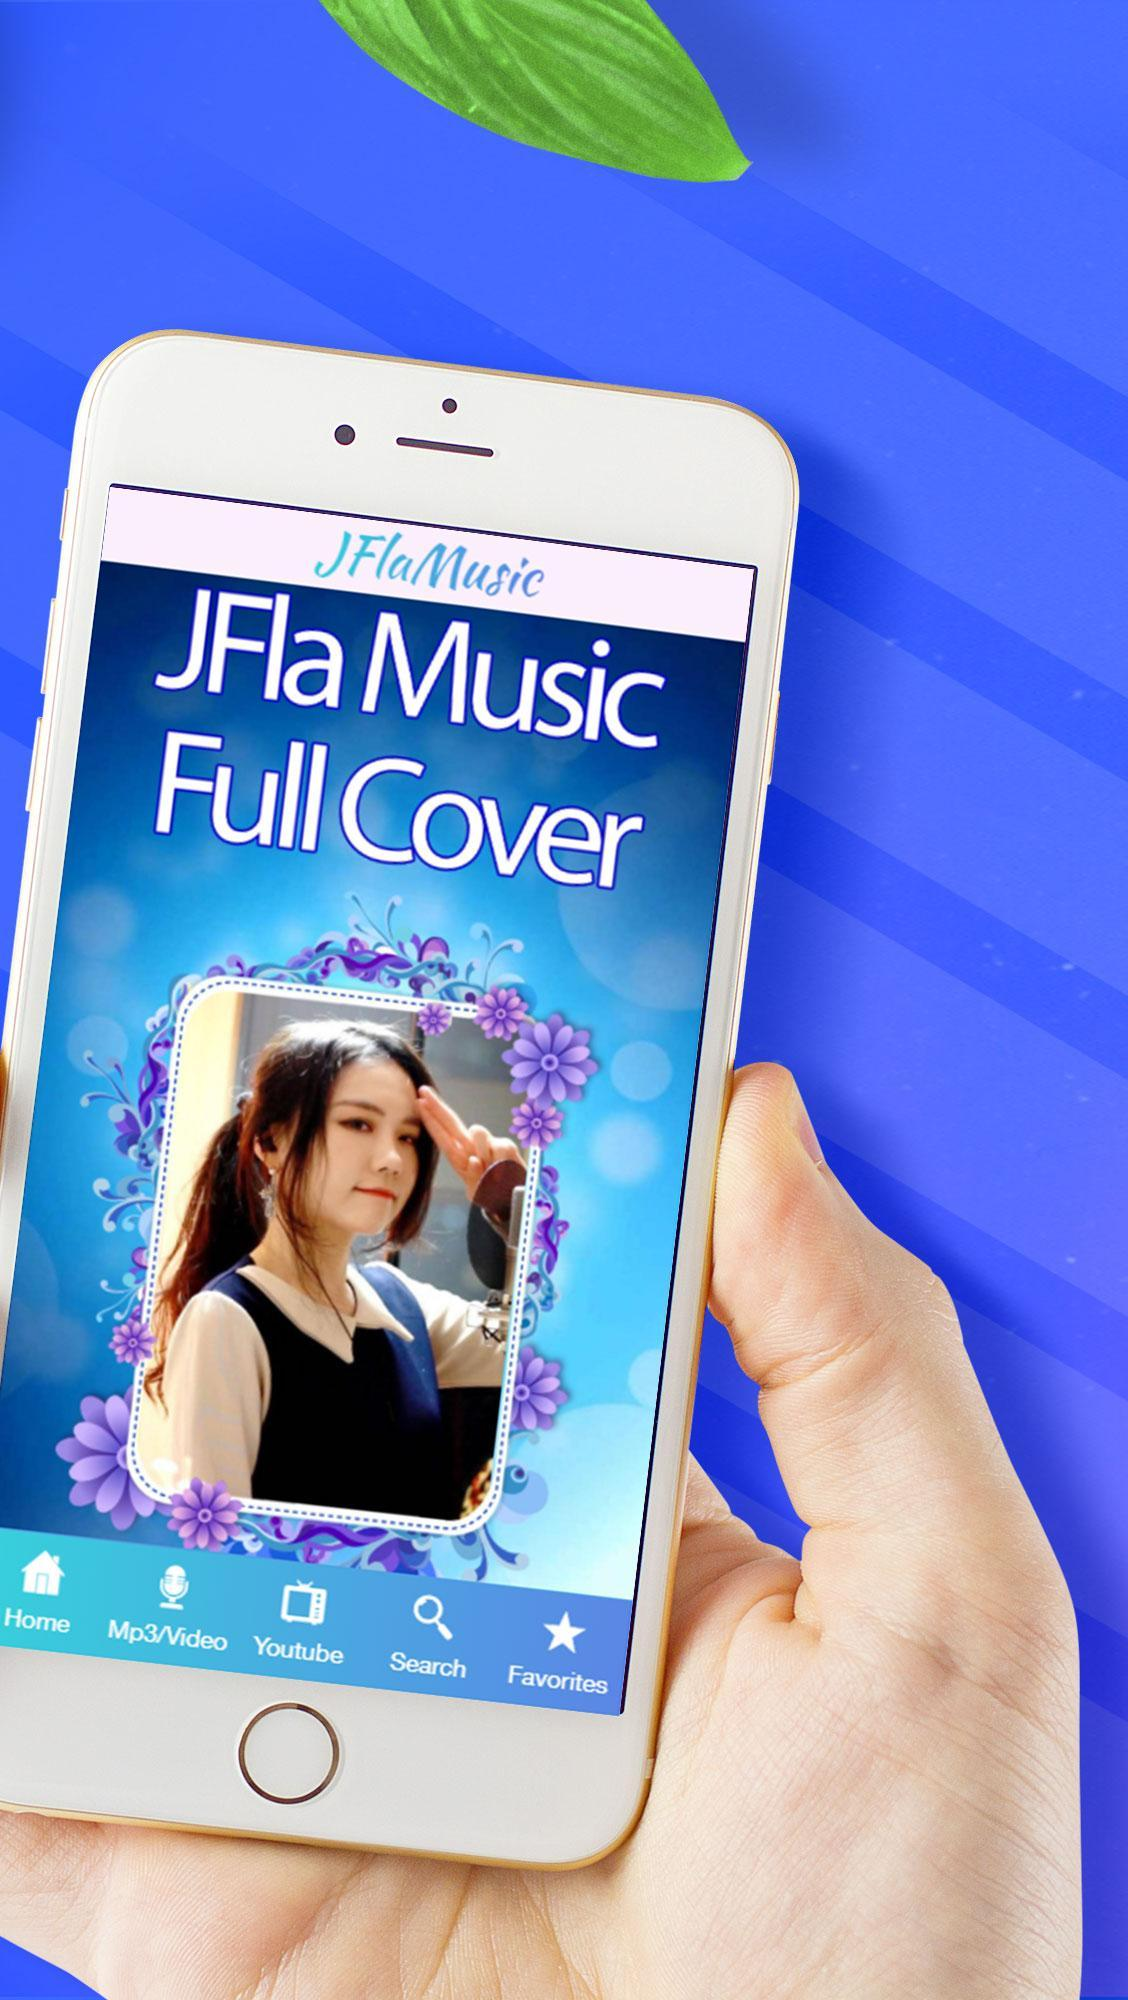 JFla Music Full Cover for Android - APK Download